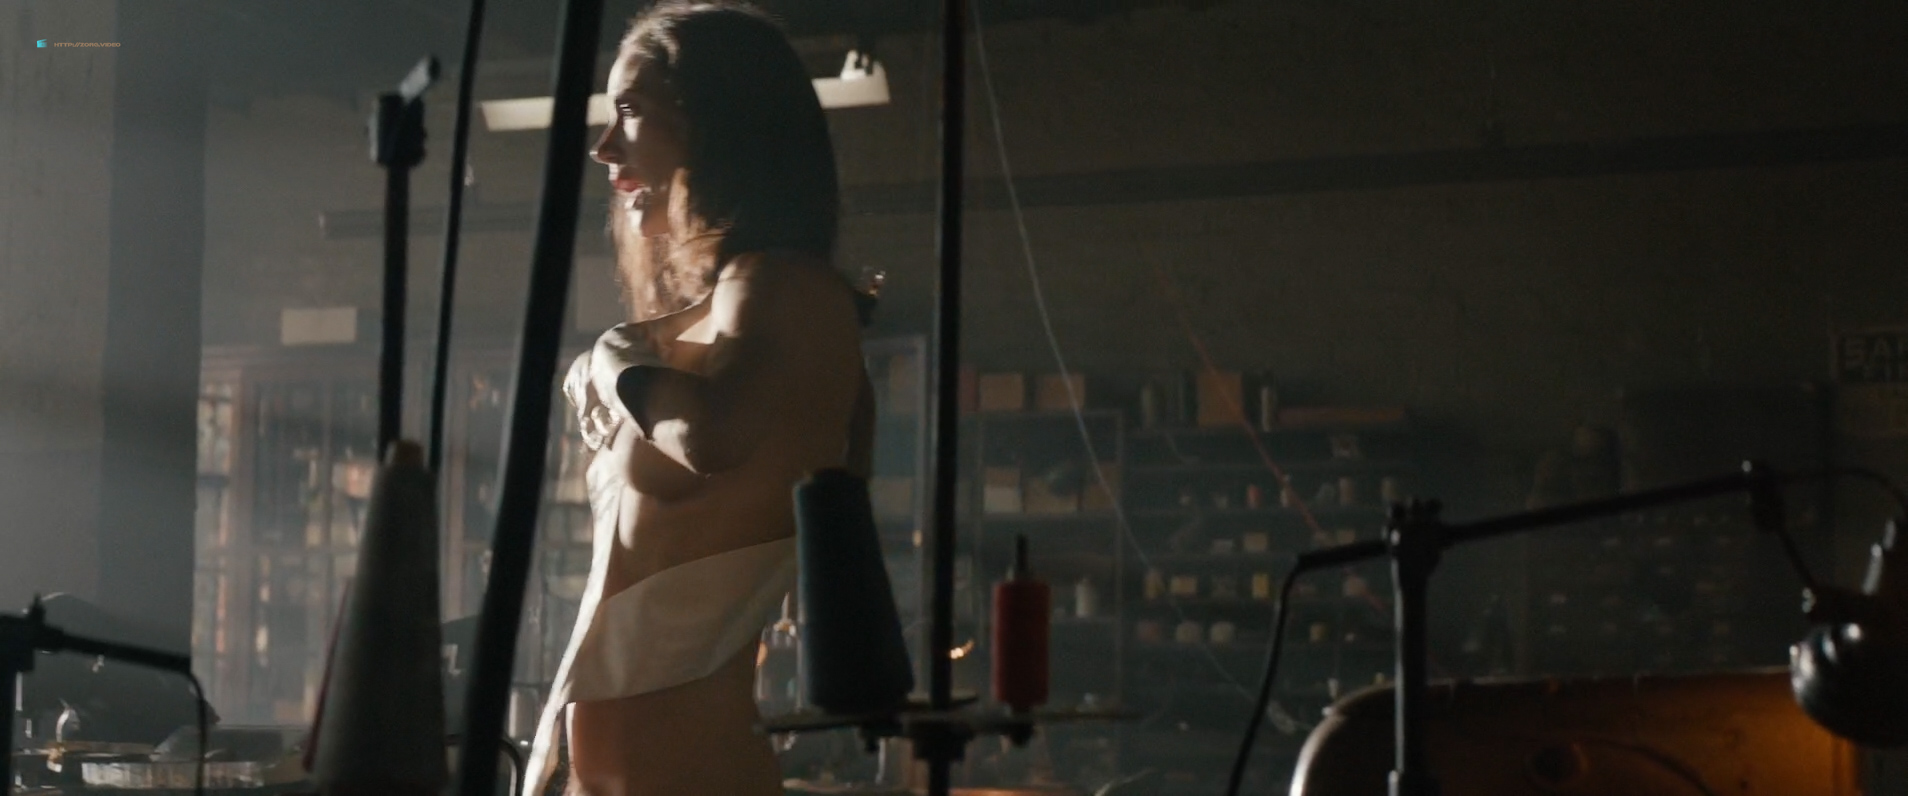 jennifer connelly nude american pastoral